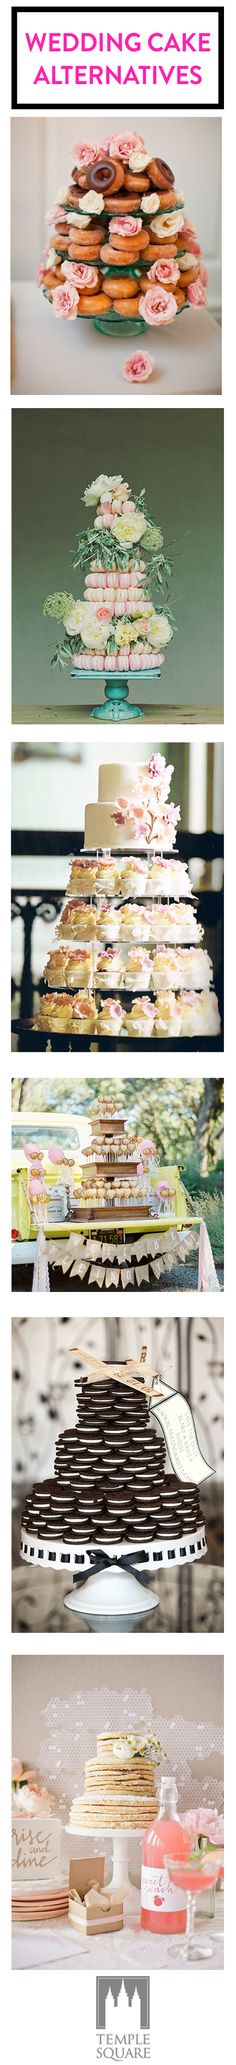 Ditch the cake at your wedding and go with one of these wedding cake alternatives!